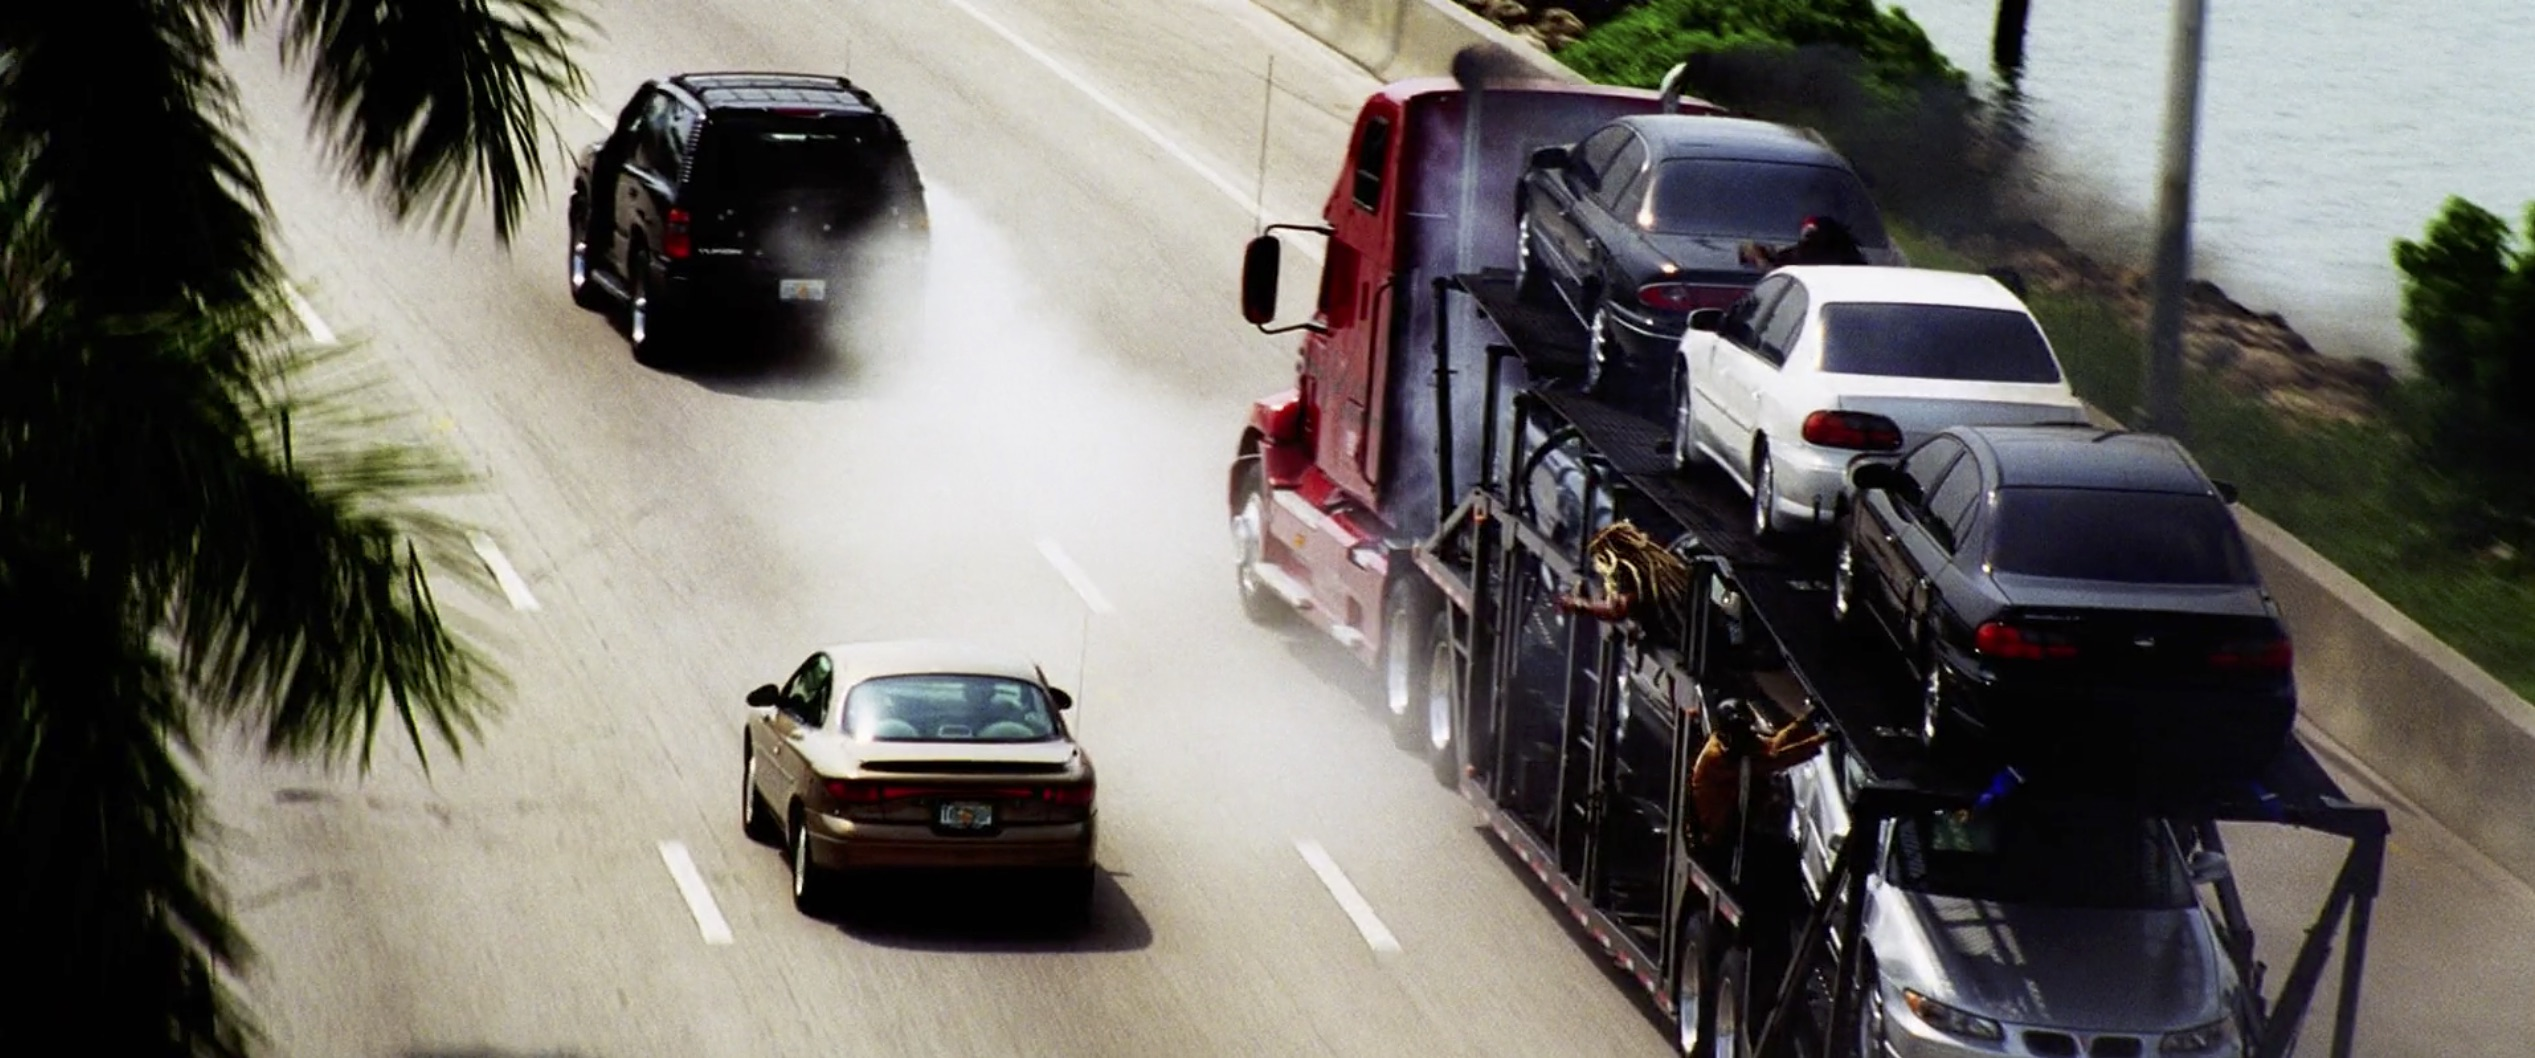 Bad Boys II semi truck chase